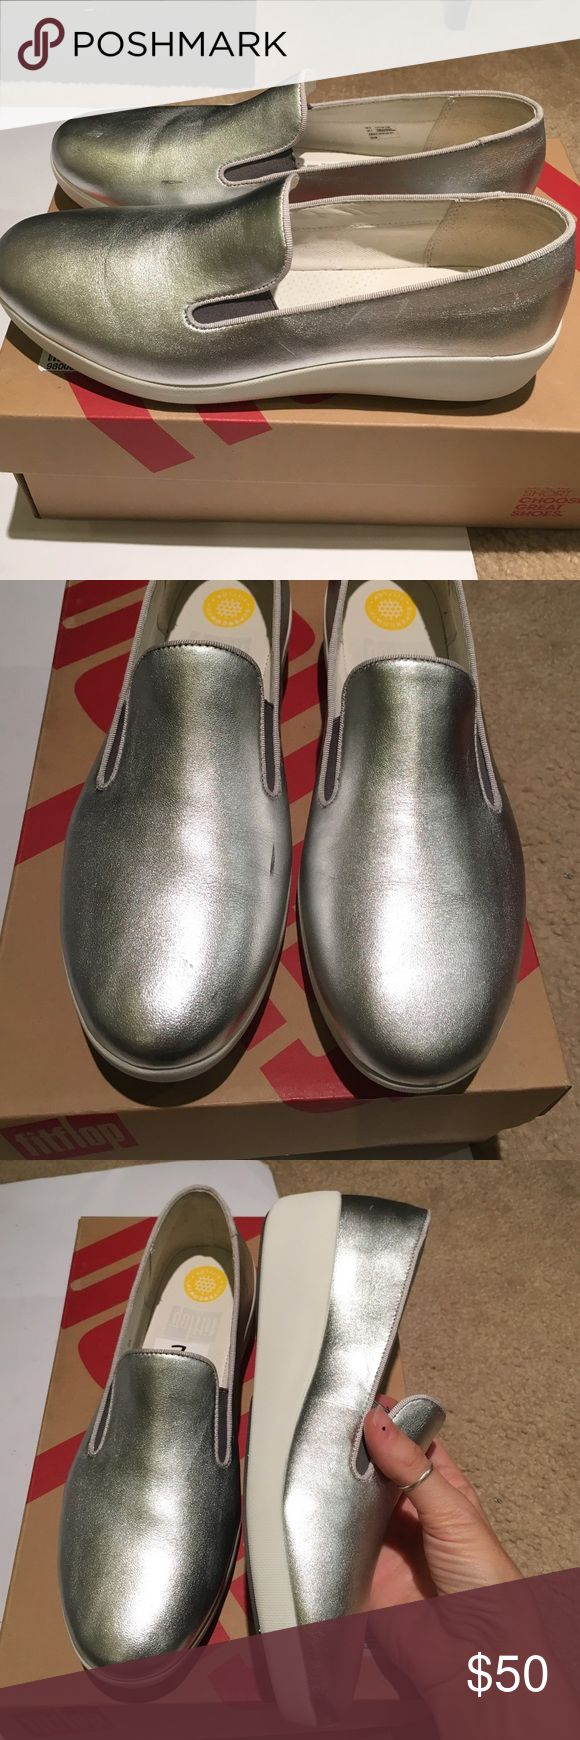 Fitflop wedge loafers new Brand new, used only as store displays fitflop silver leather wedge loafers. Has one minor scuff on side as shown in pictures. Meant to keep you fit while wearing! Comes in original box fitflop Shoes Wedges